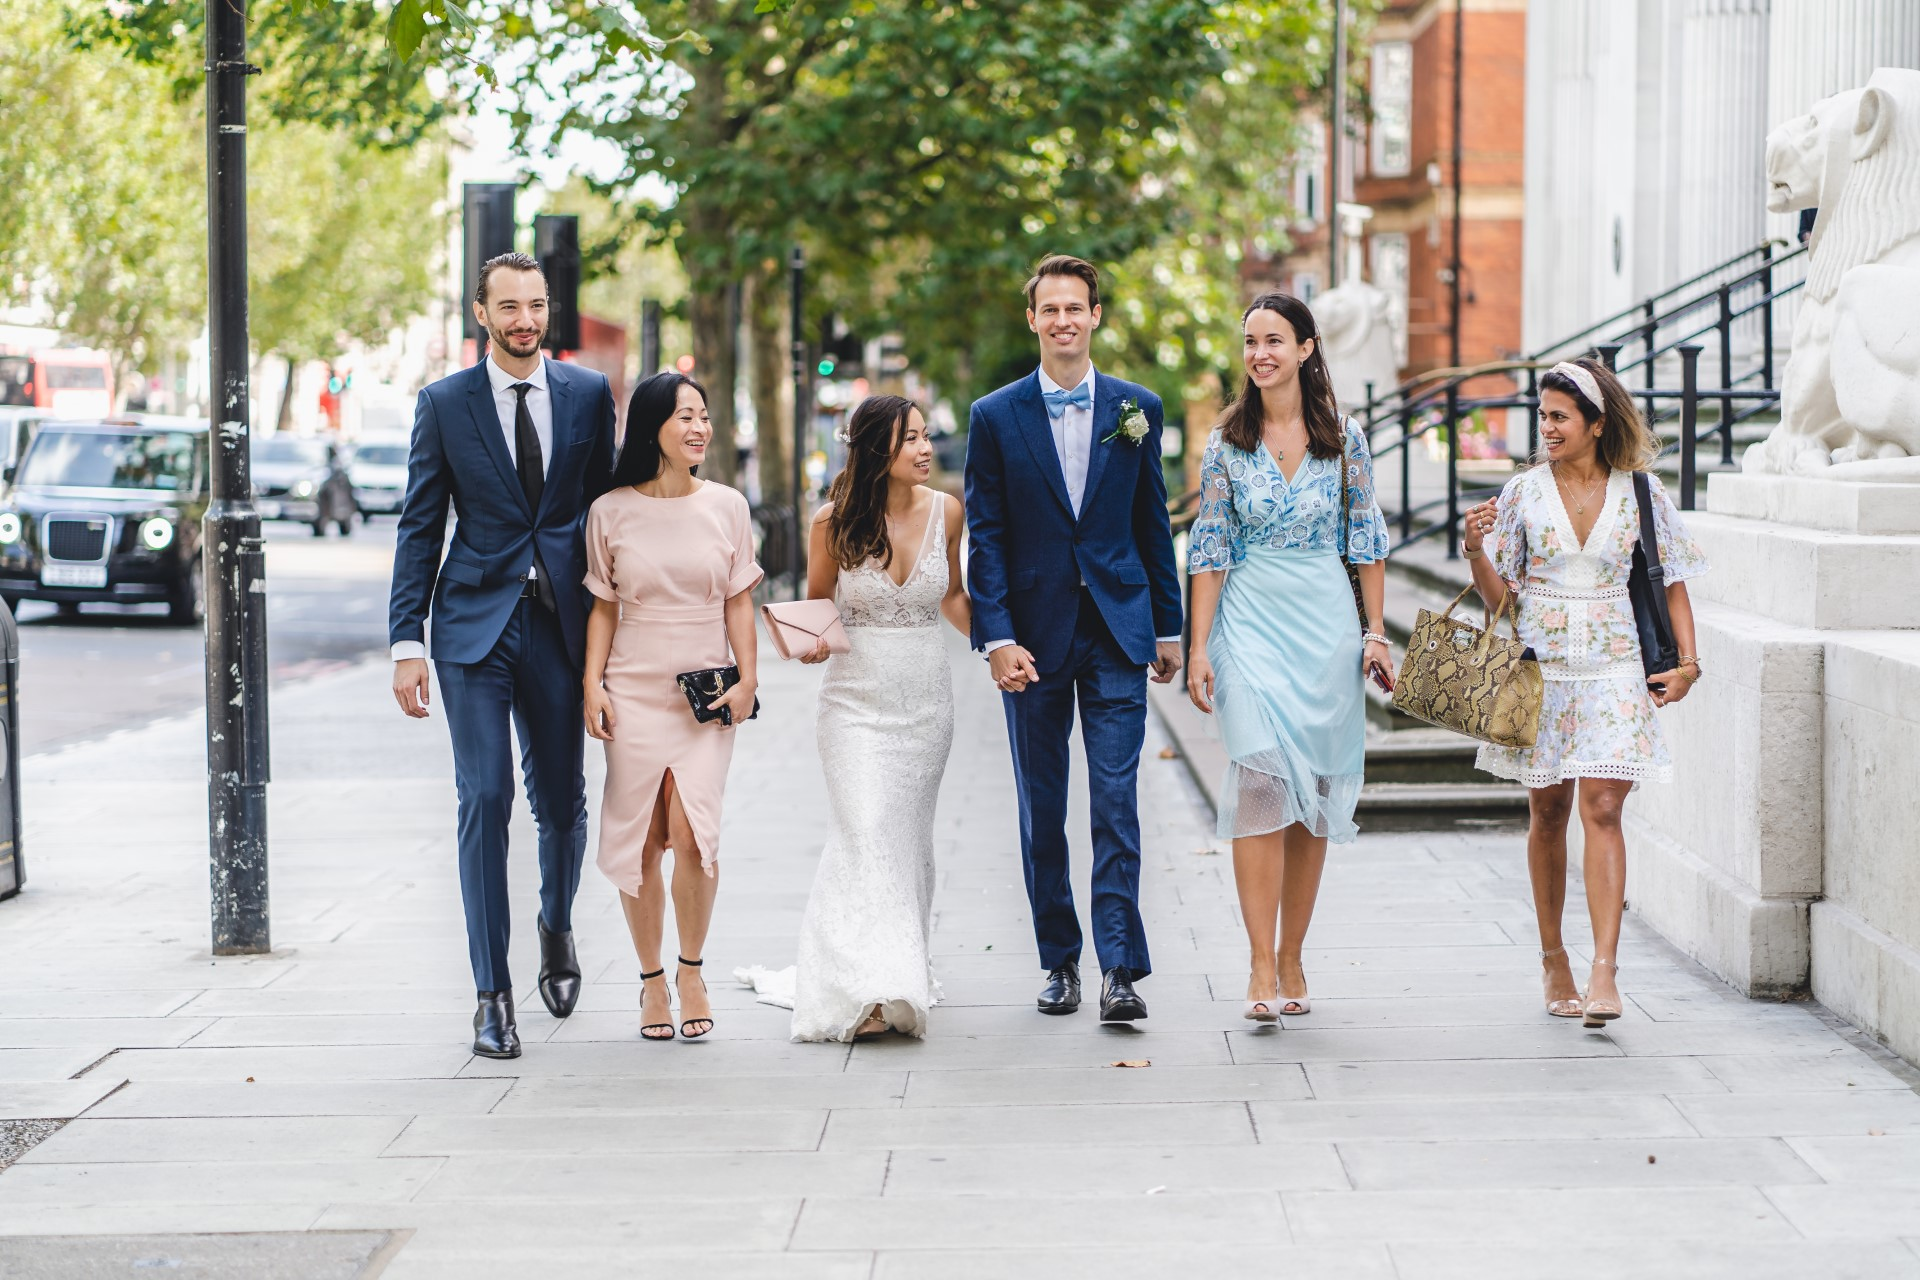 Westminster Council House Wedding Pics | The bride, groom, and wedding party all head off